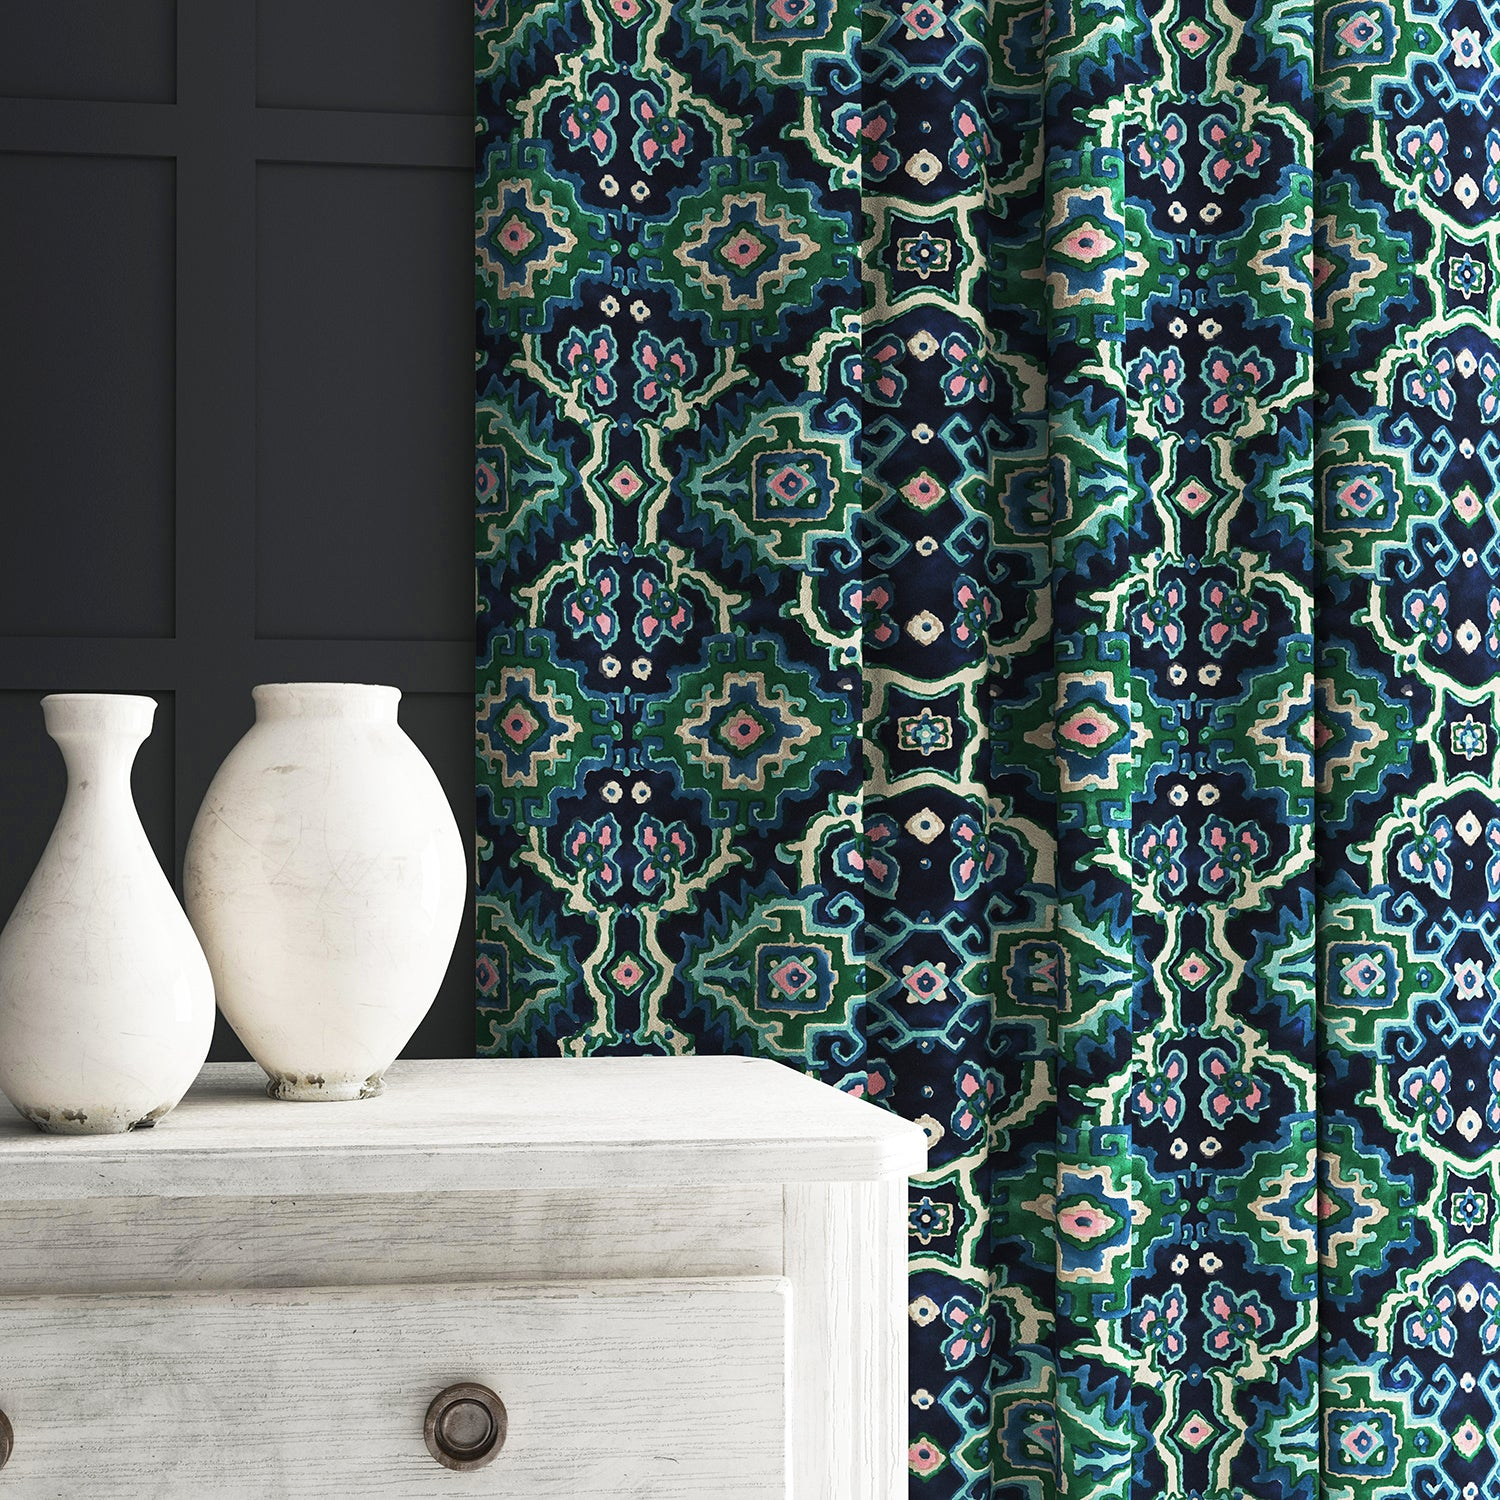 Velvet curtain in a printed velvet fabric with an oriental geometric design in blue and green colours